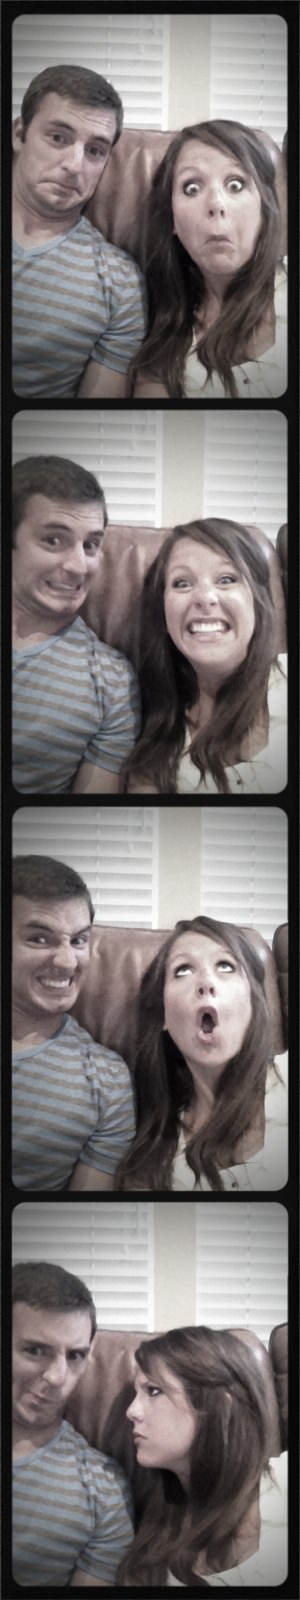 Pocketbooth 11 07 23 19 47 31